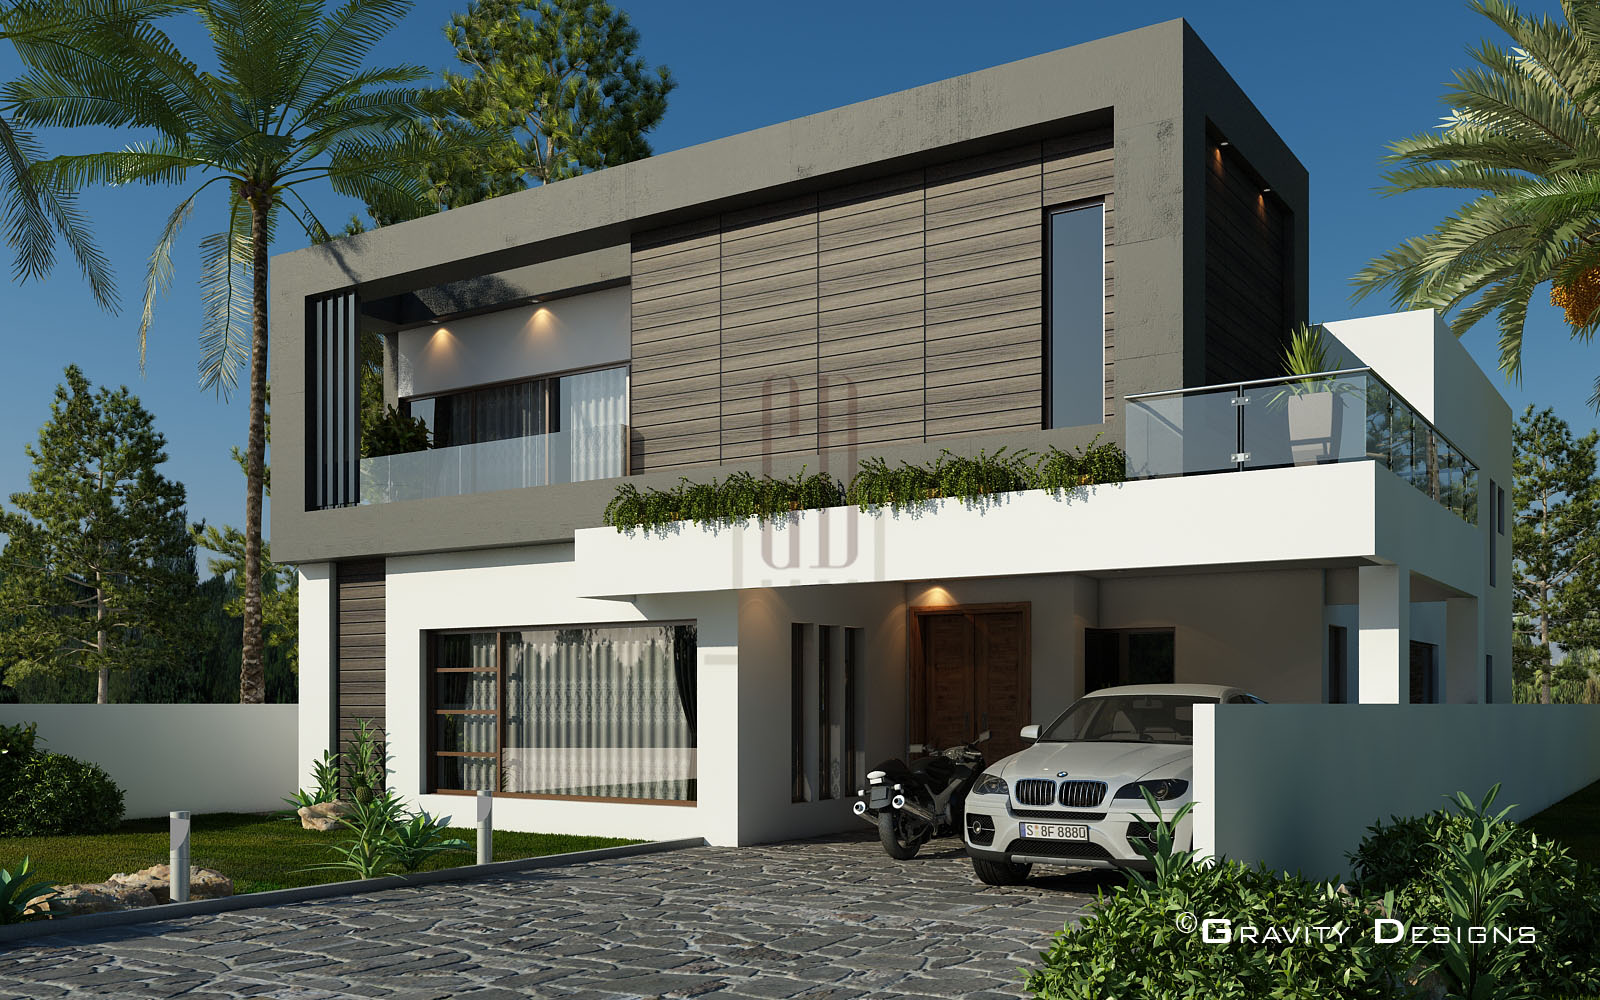 residential exterior designs gravity design